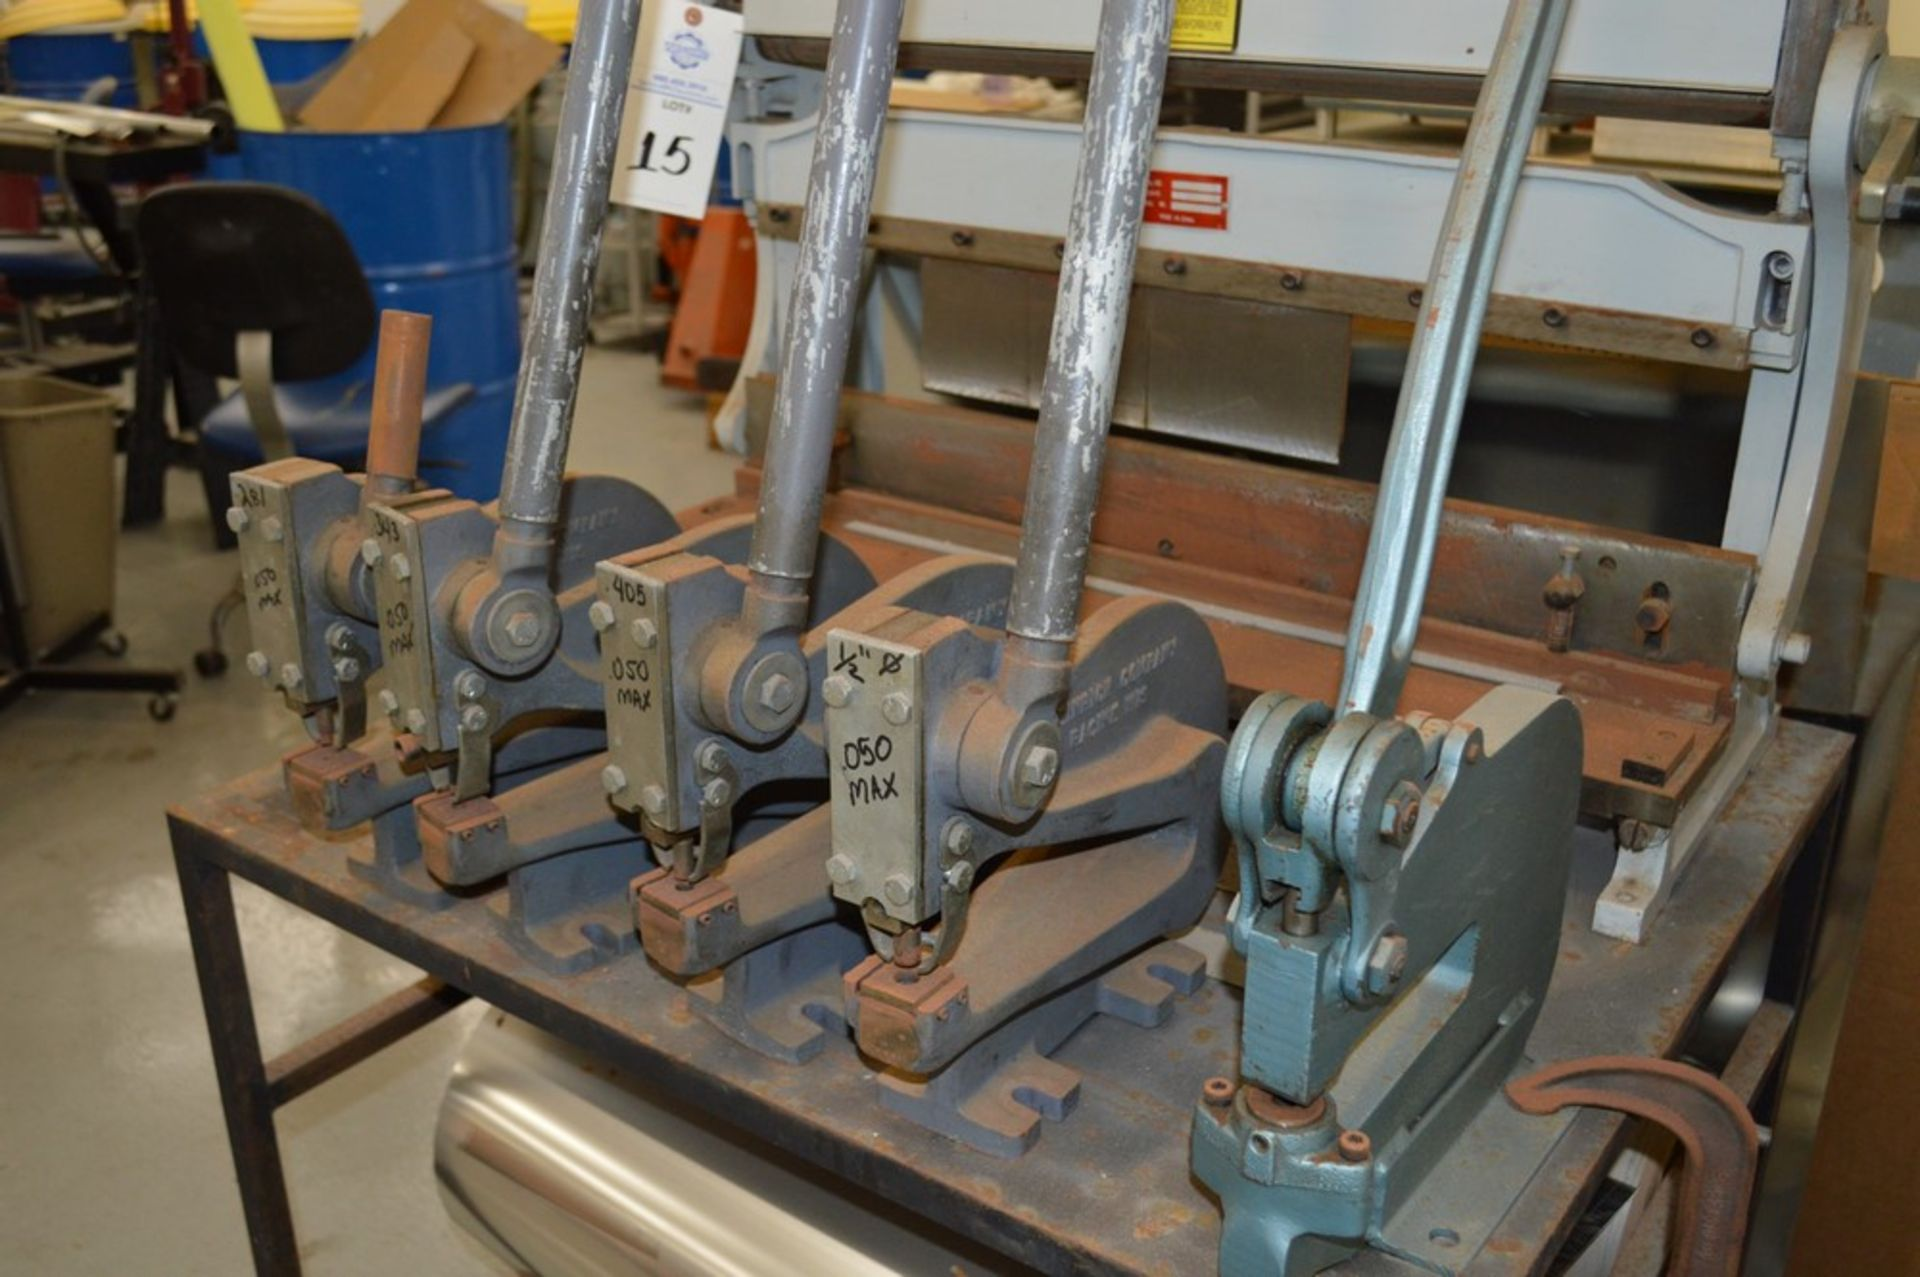 1995 Combined Manual Shear and Break black metal stand, metal rolls, (4 Each) Henrich/Pexto Model- - Image 4 of 8